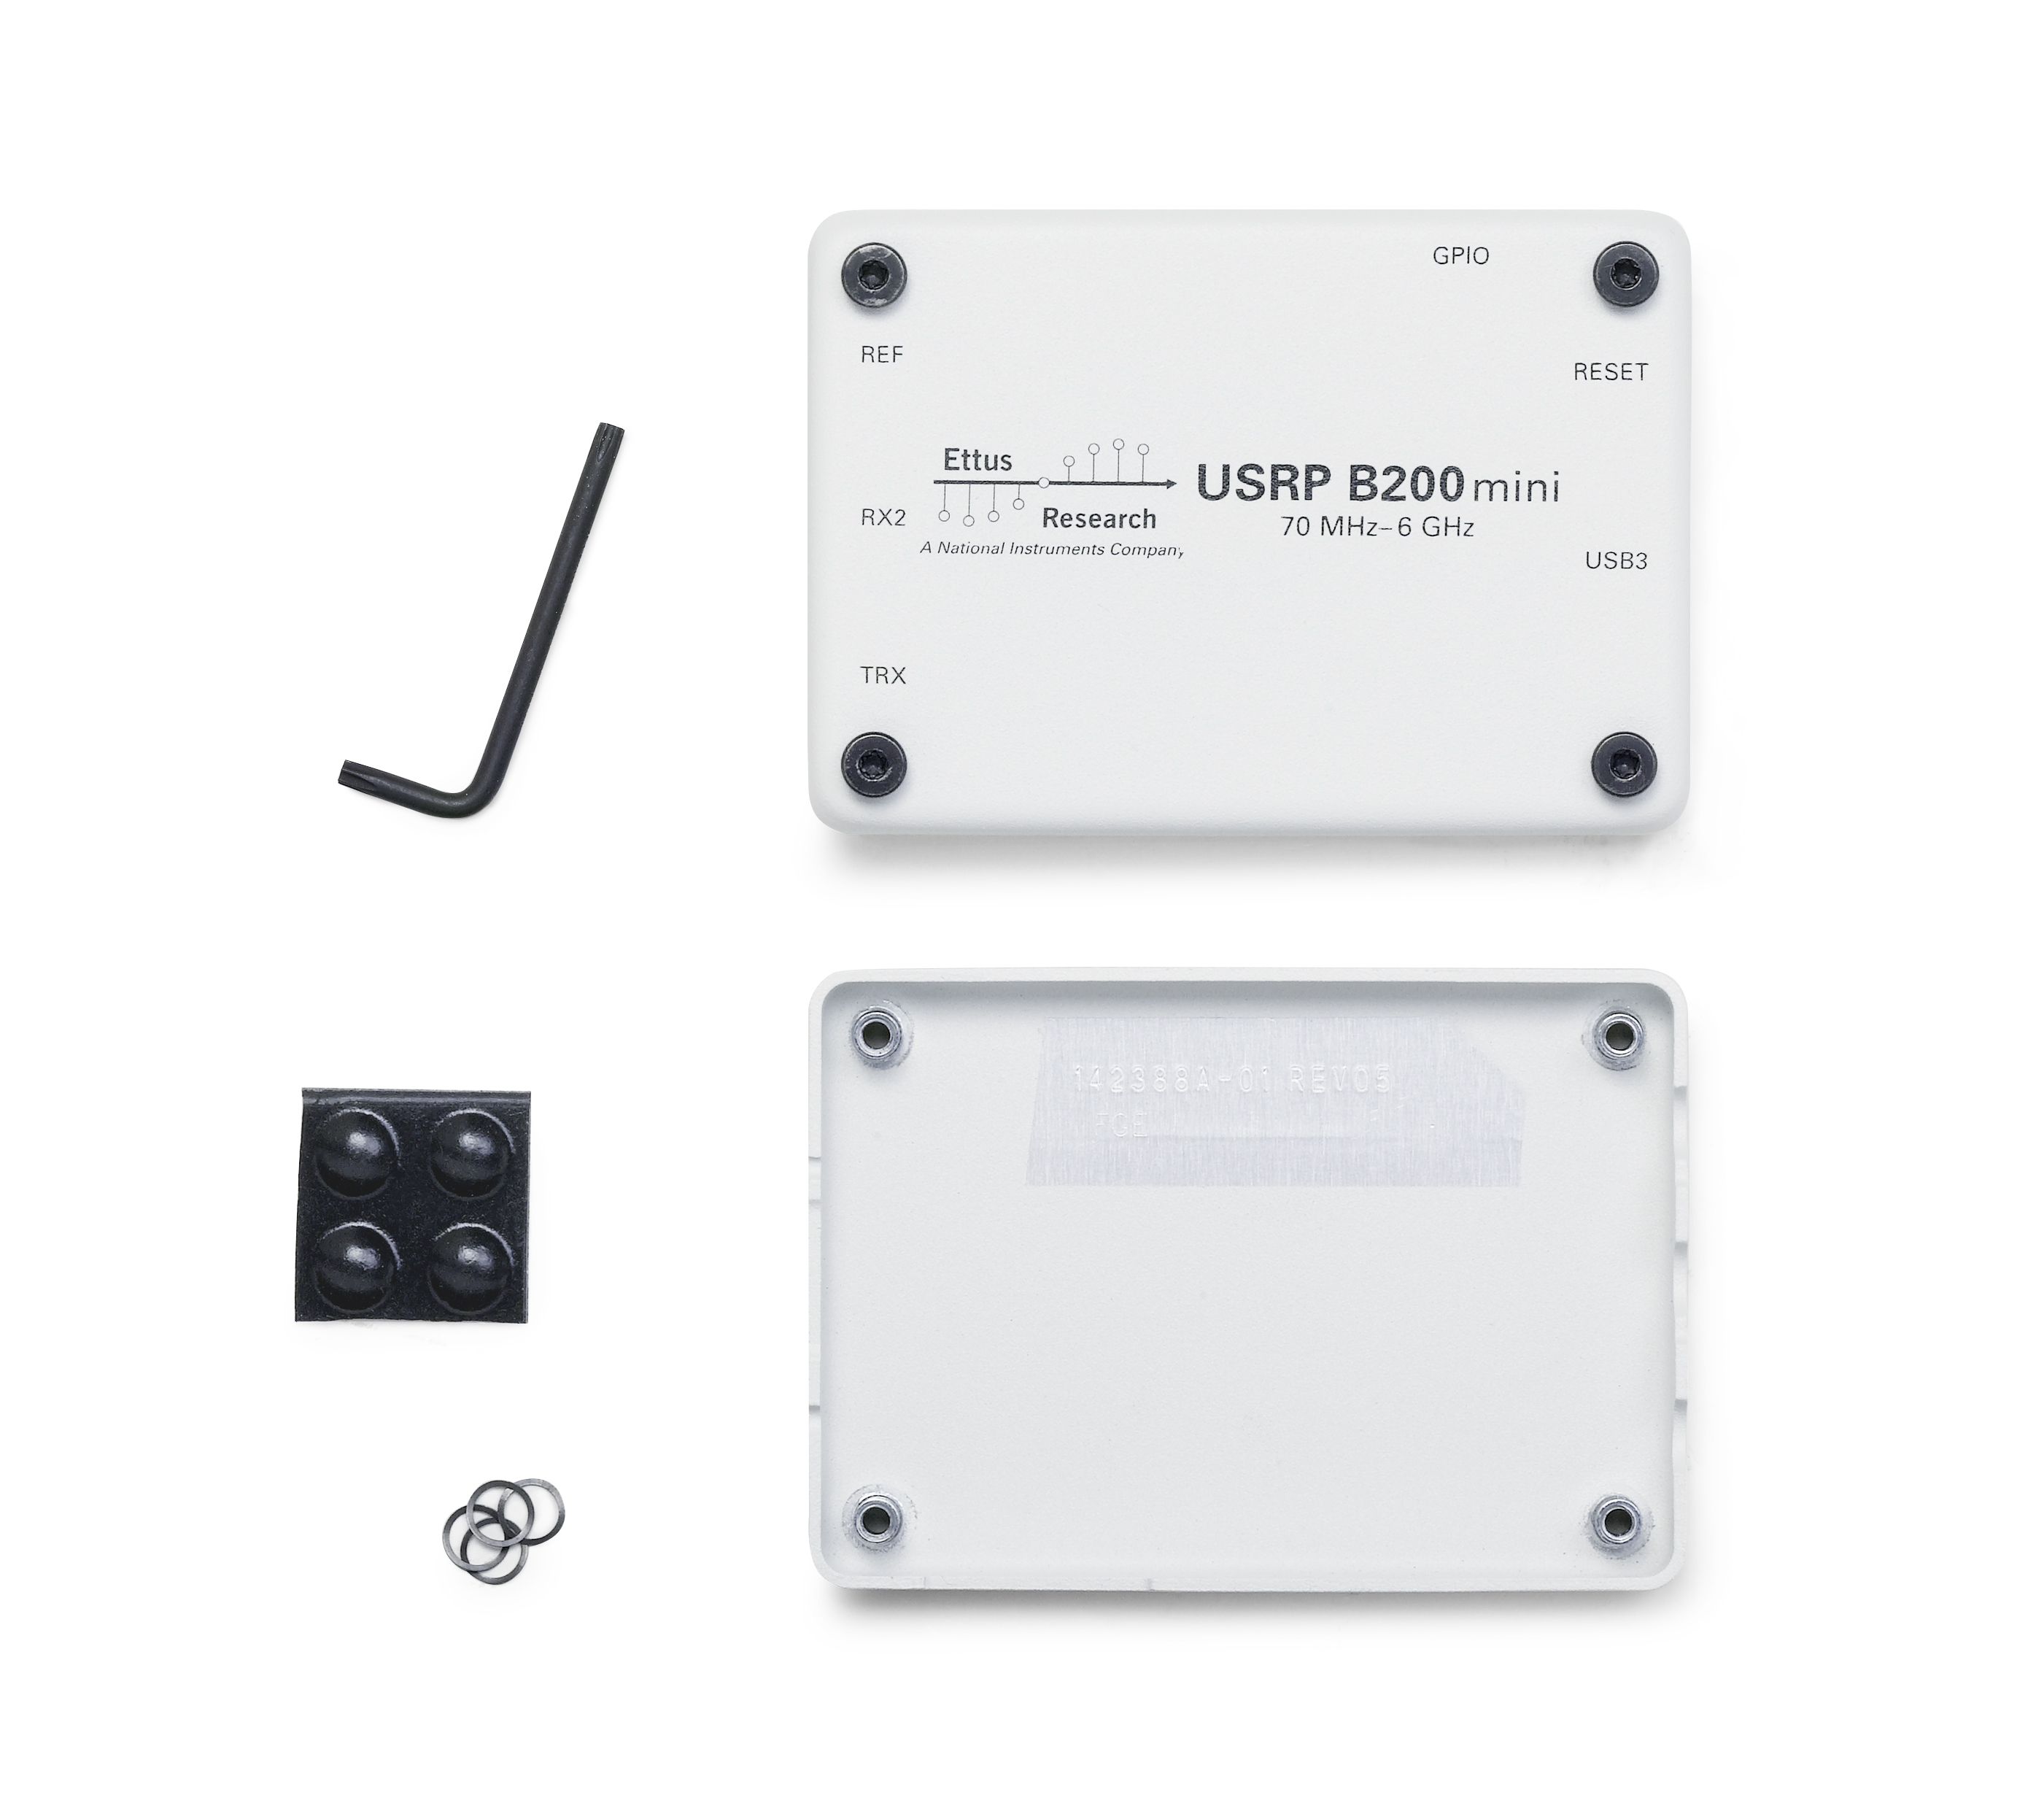 USRP B200mini Enclosure kit